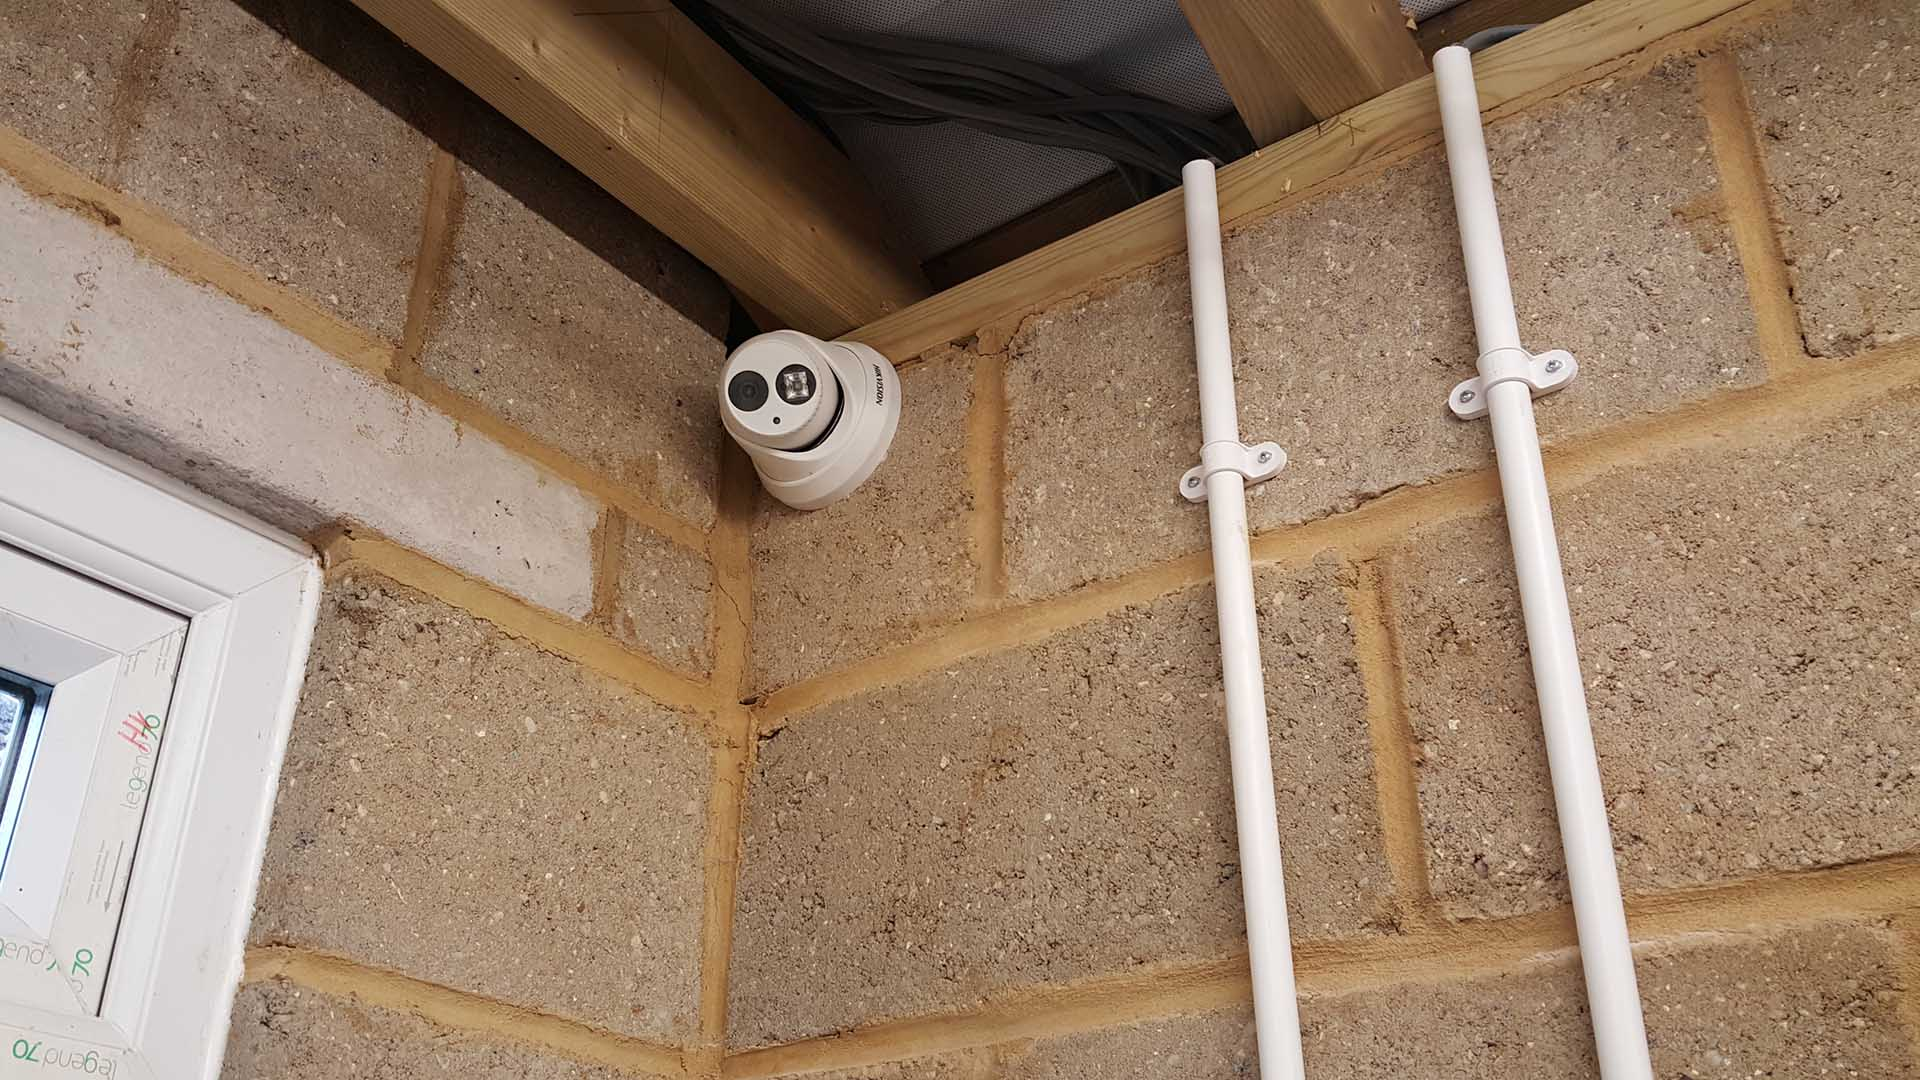 CCTV Installation in Enfield